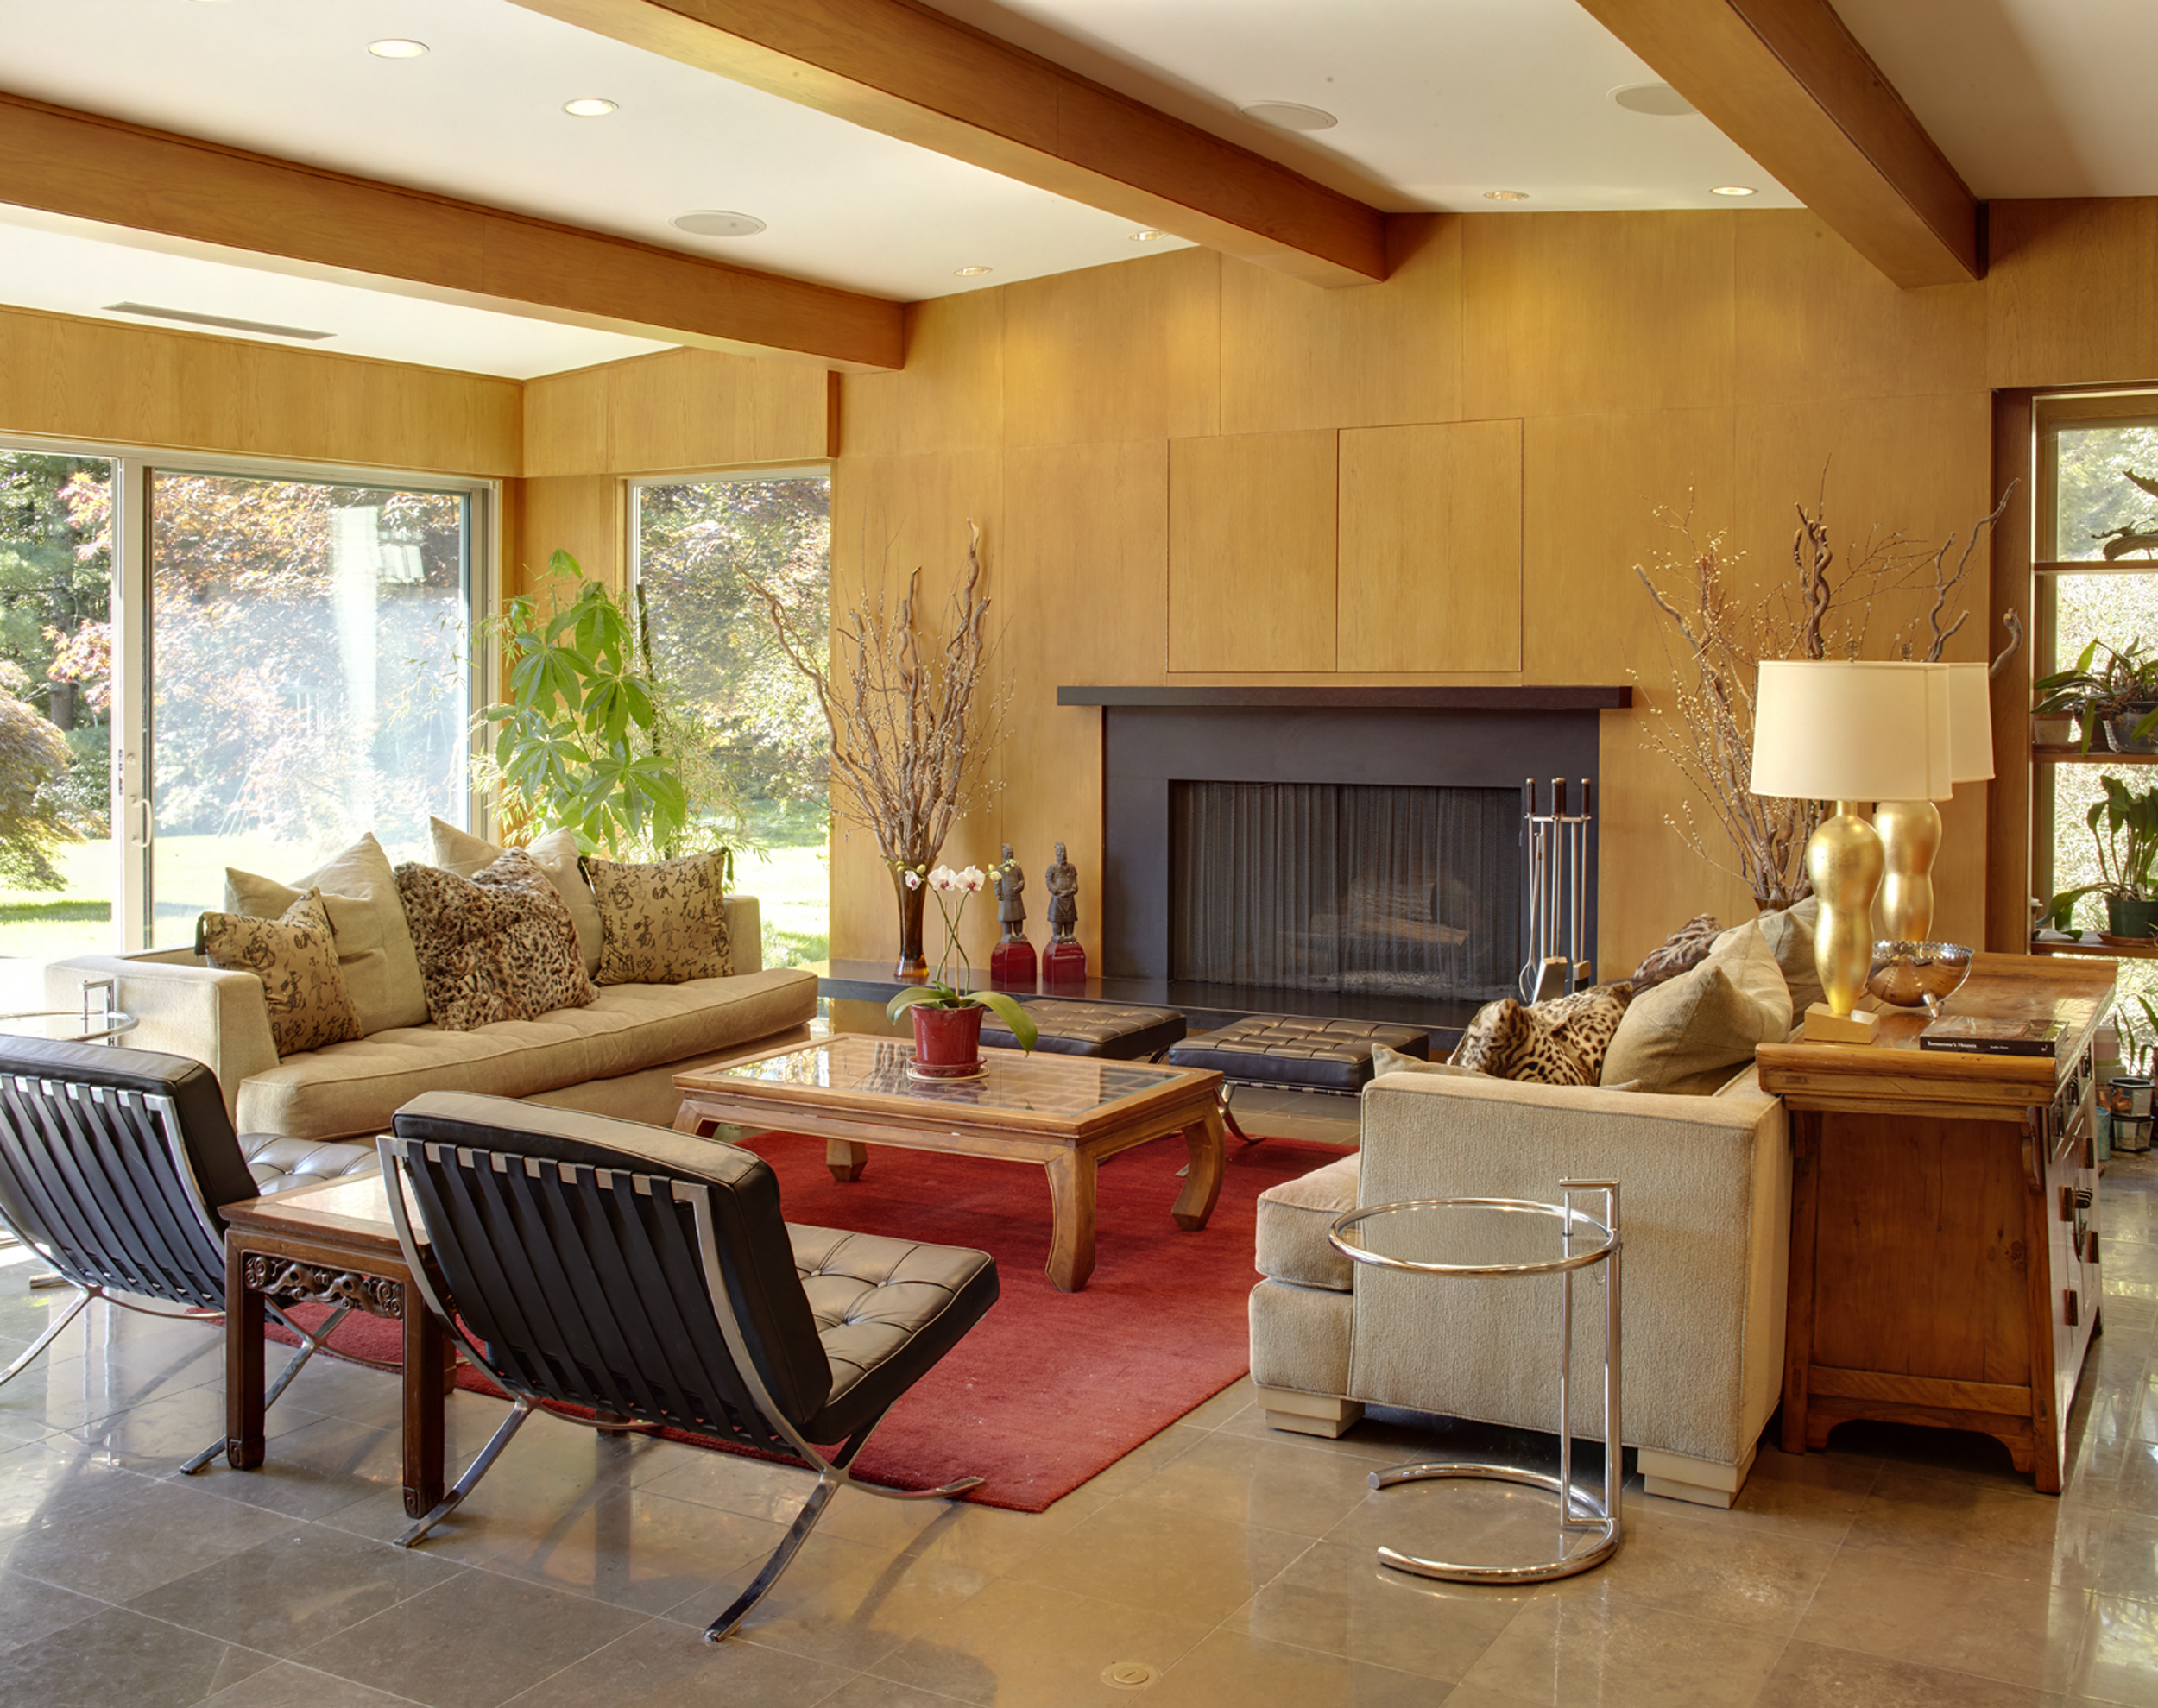 Home house & components rooms living room maximize your space and master your aesthetic with our living room designs, furniture and accessories. 10 Mid-Century Modern Living Rooms - Best Midcentury Decor